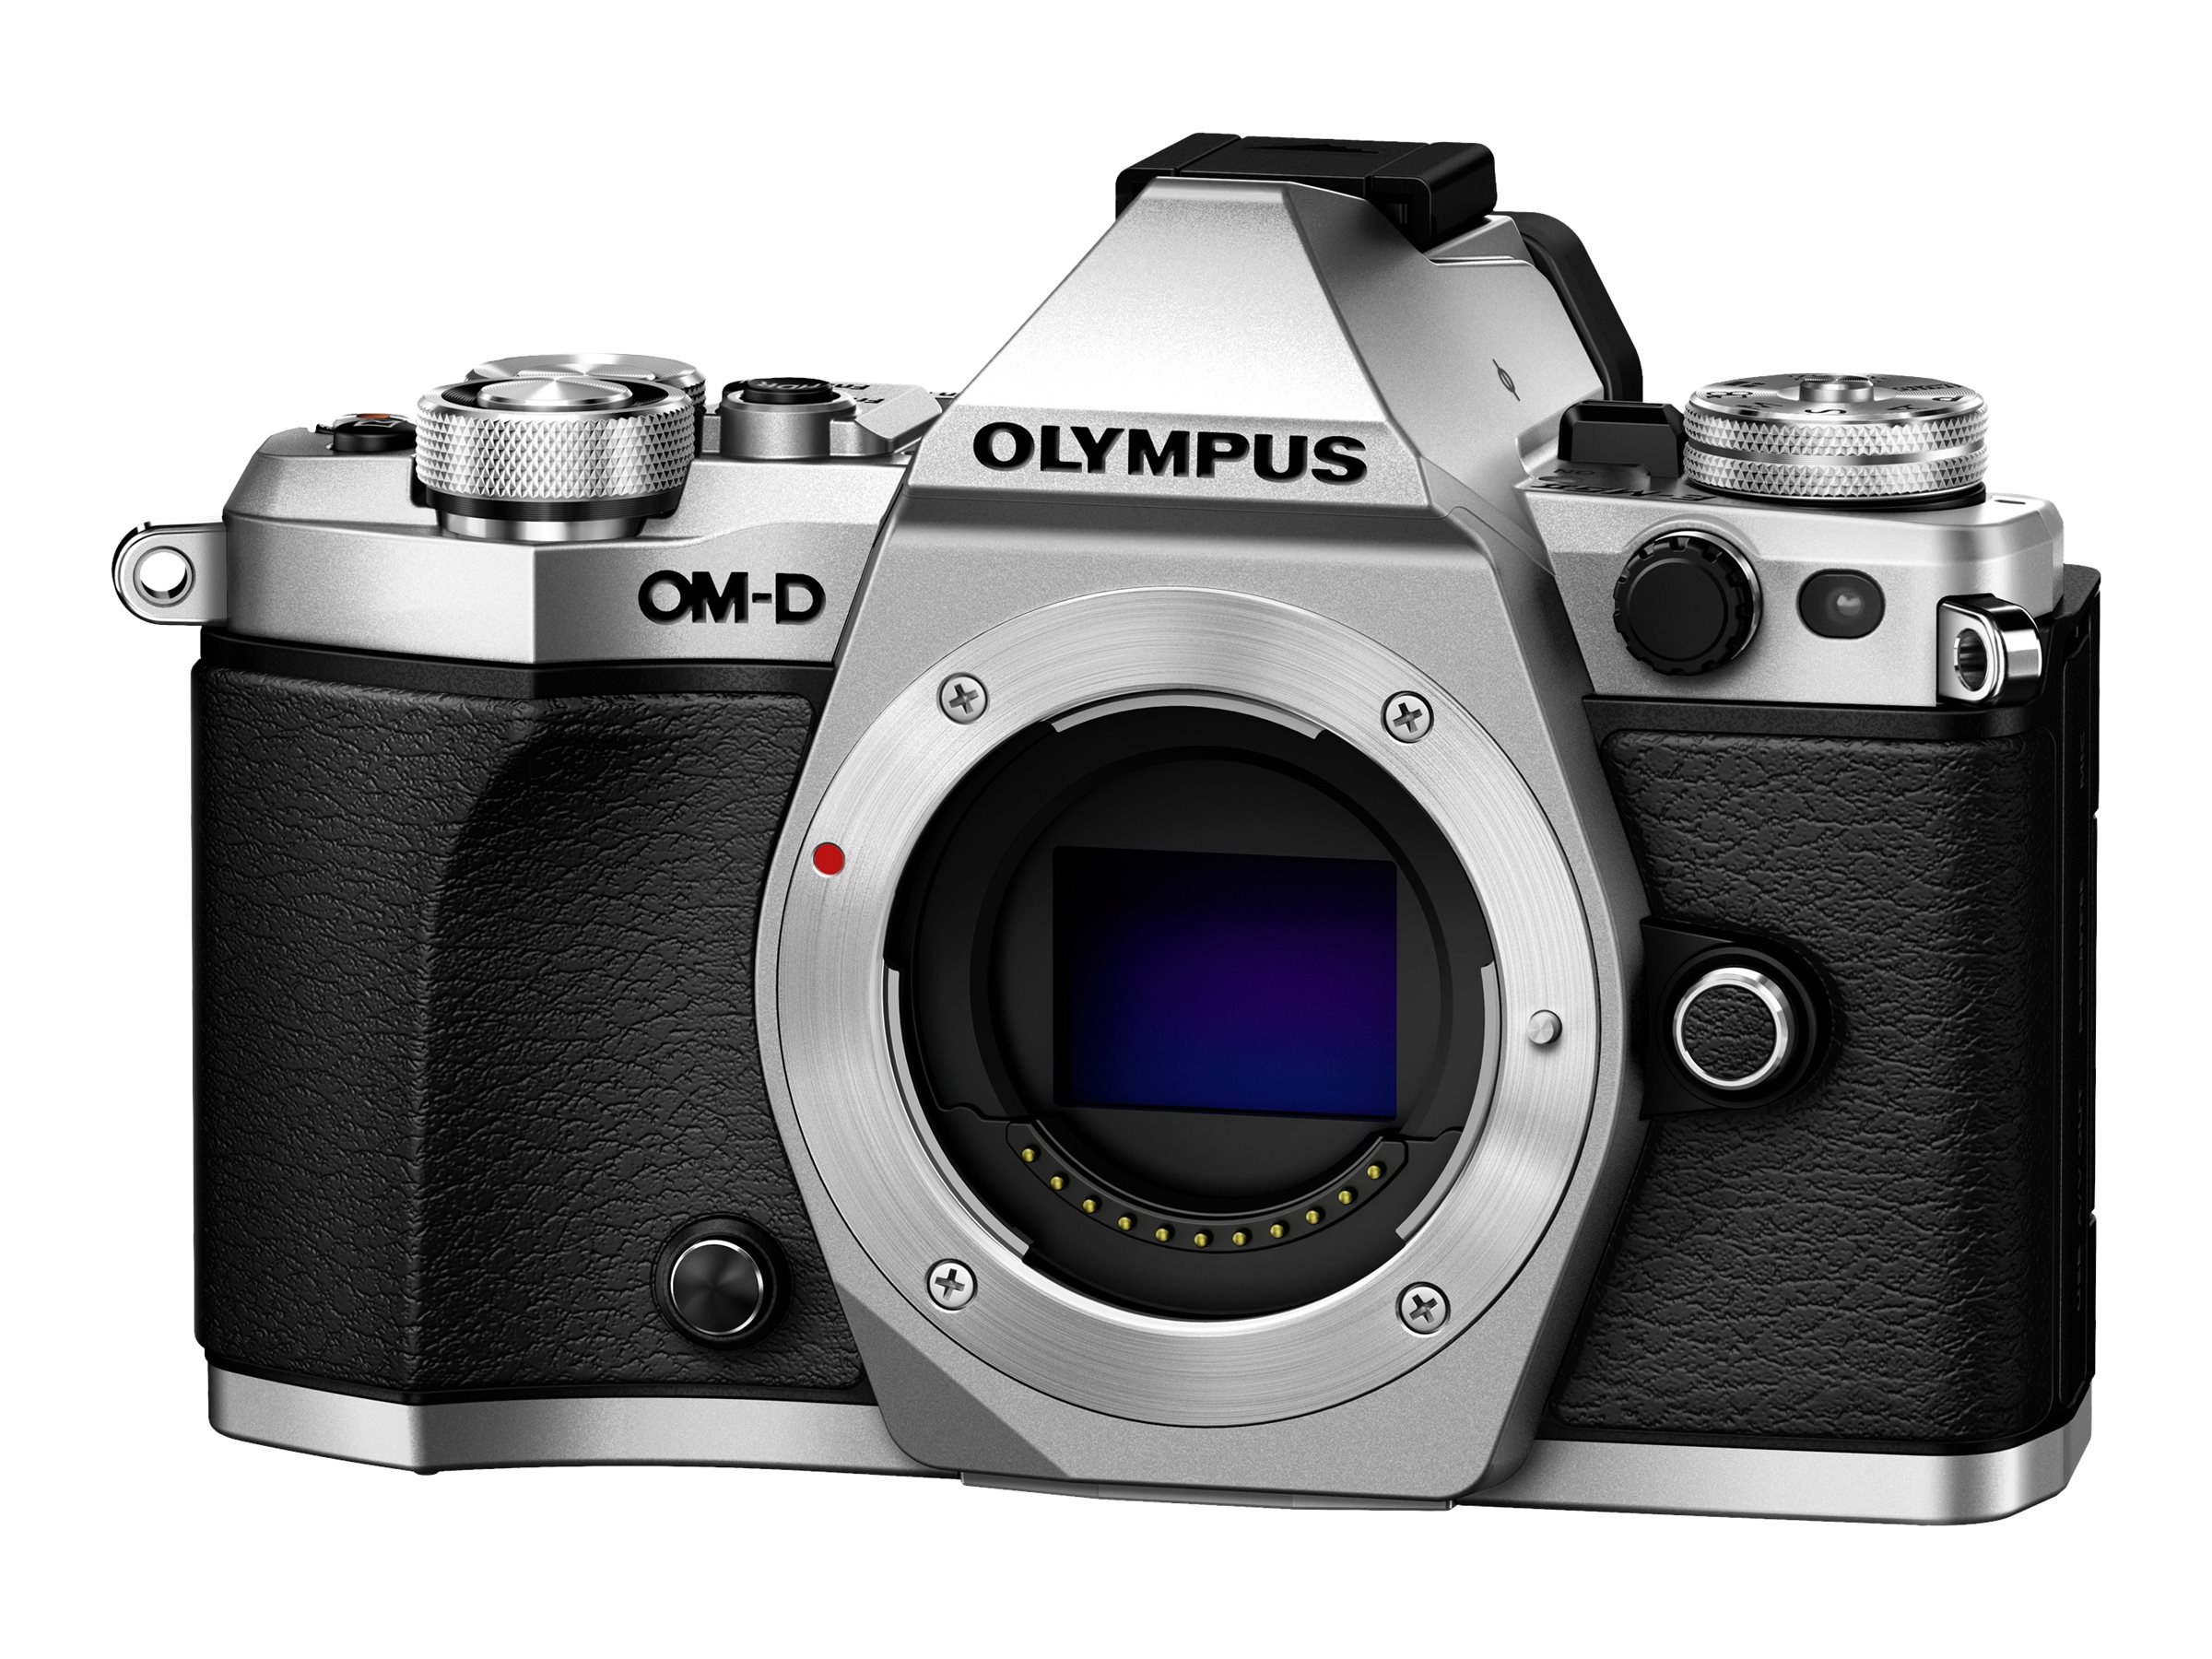 Olympus OM-D E-M5 Mark II Mirrorless Micro Four Thirds Digital Camera, Silver (Body Only)